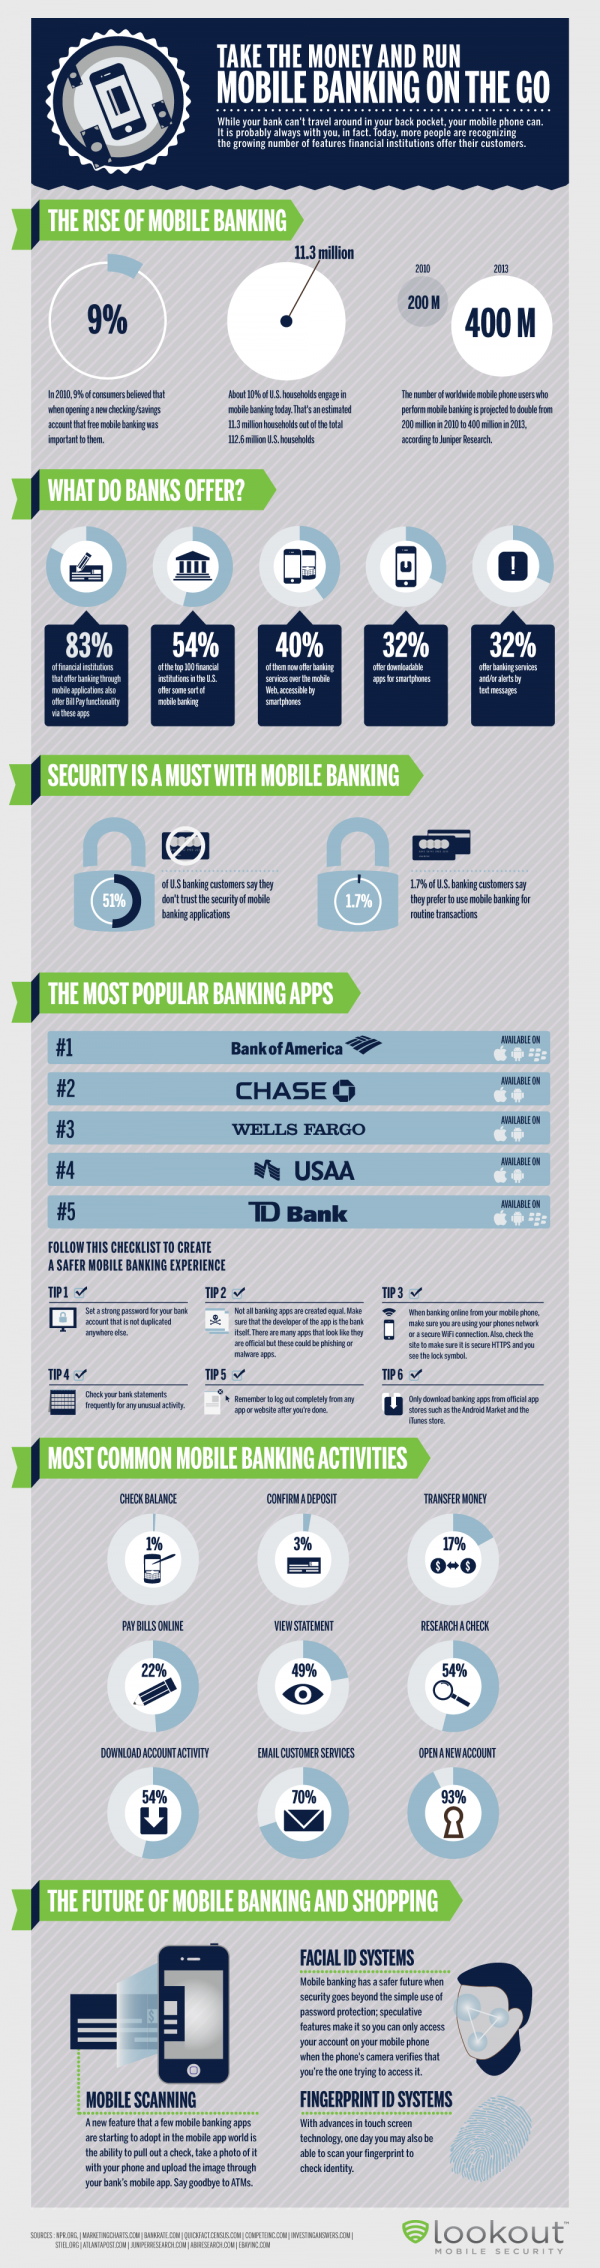 13. Growing trend of mobile banking